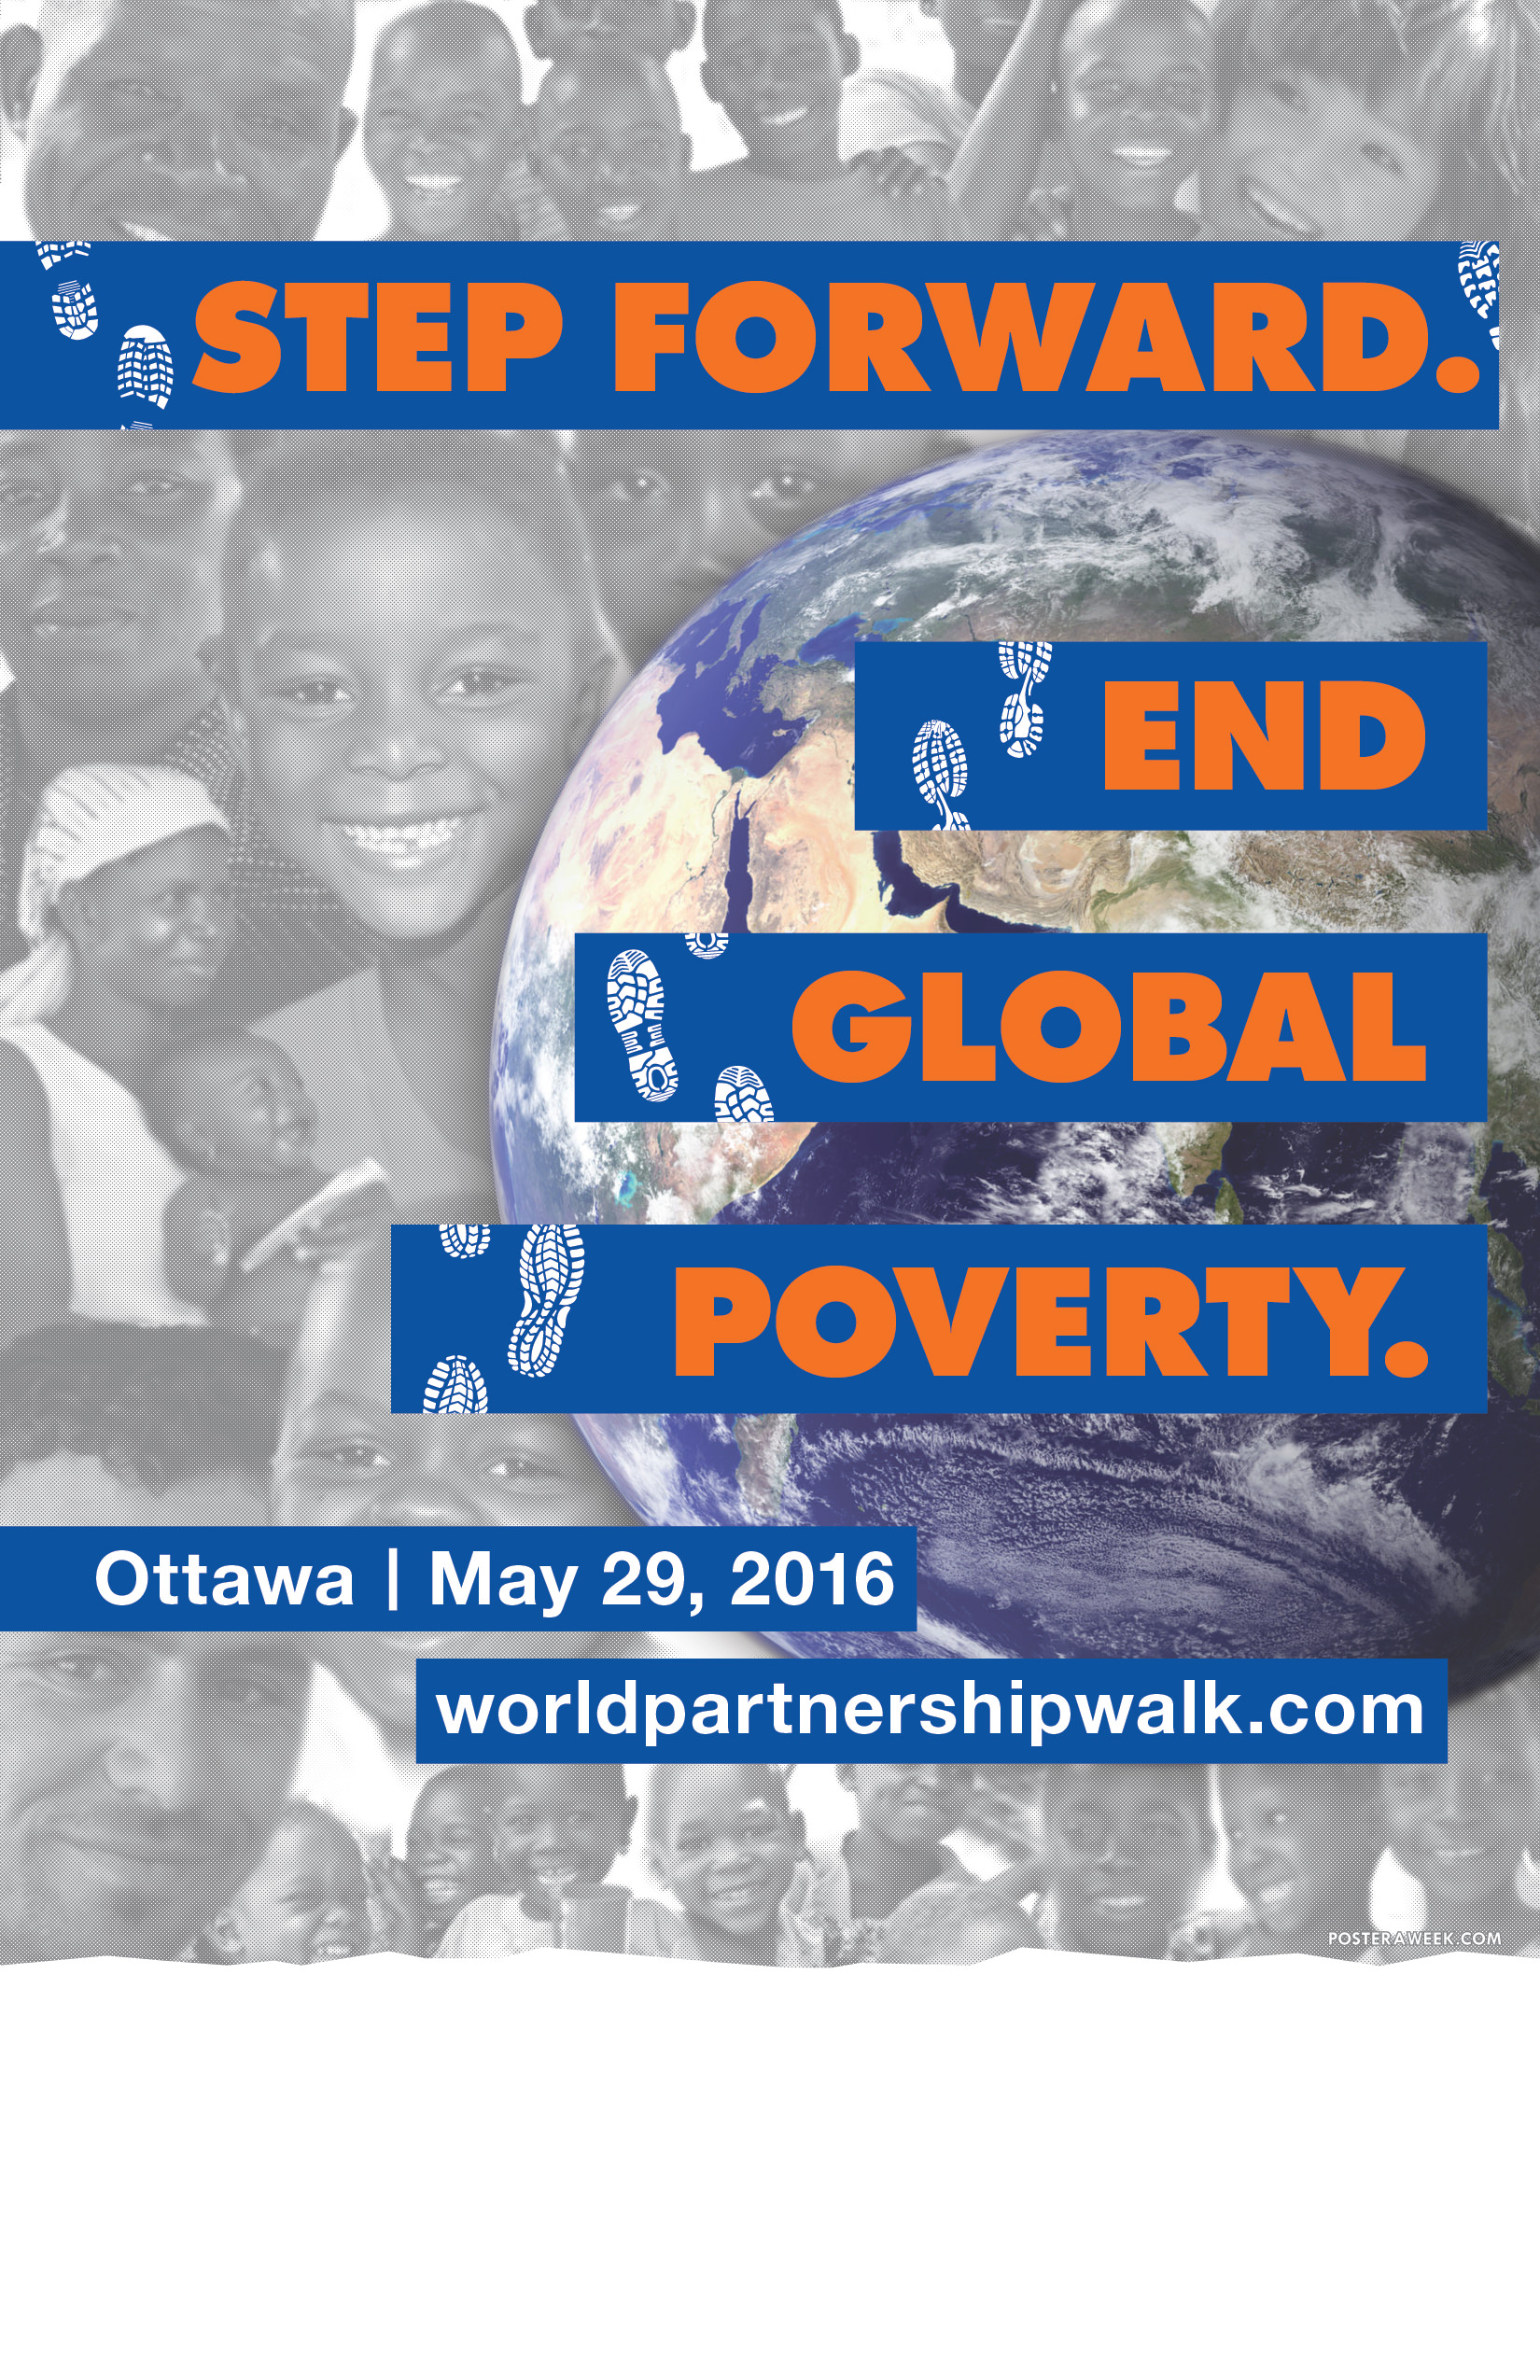 Poster a Week Free Posters Online - This Week: World Partnership Walk Event Poster